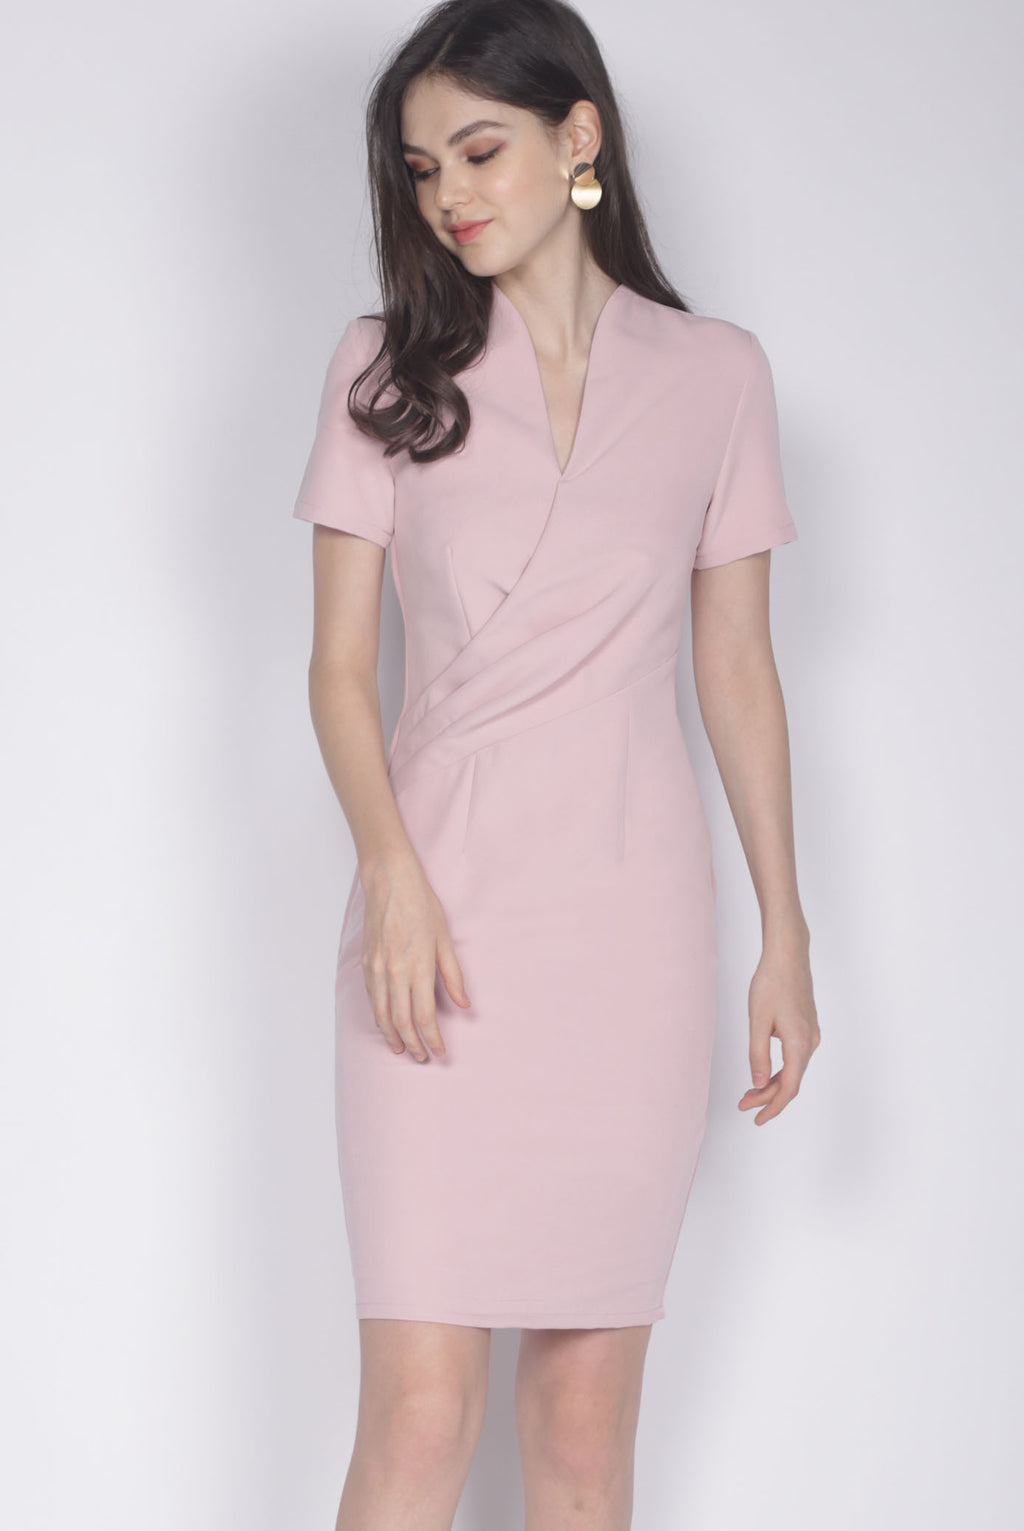 TDC Bregan High Collar Pencil Dress In Blush